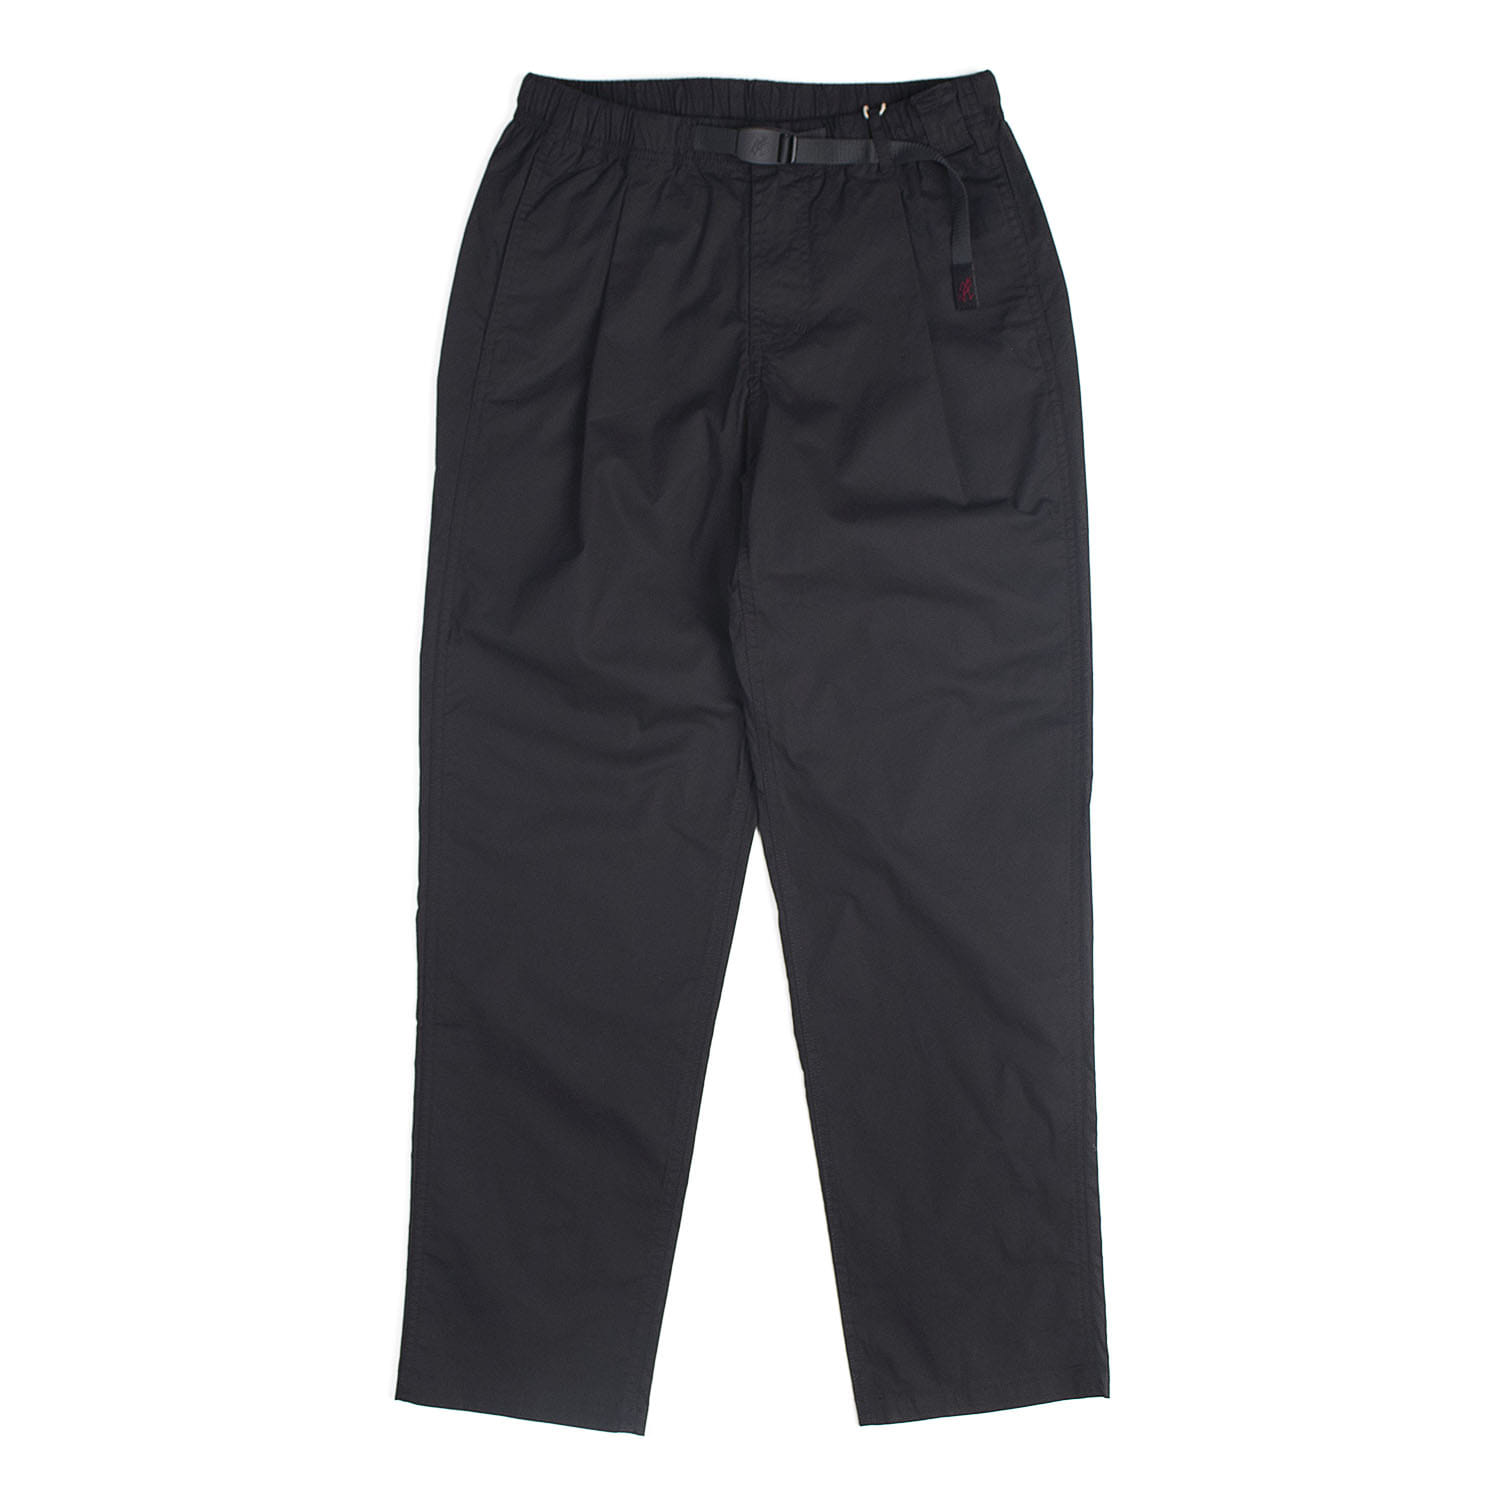 Weather Tuck Tapered Pants (Black)